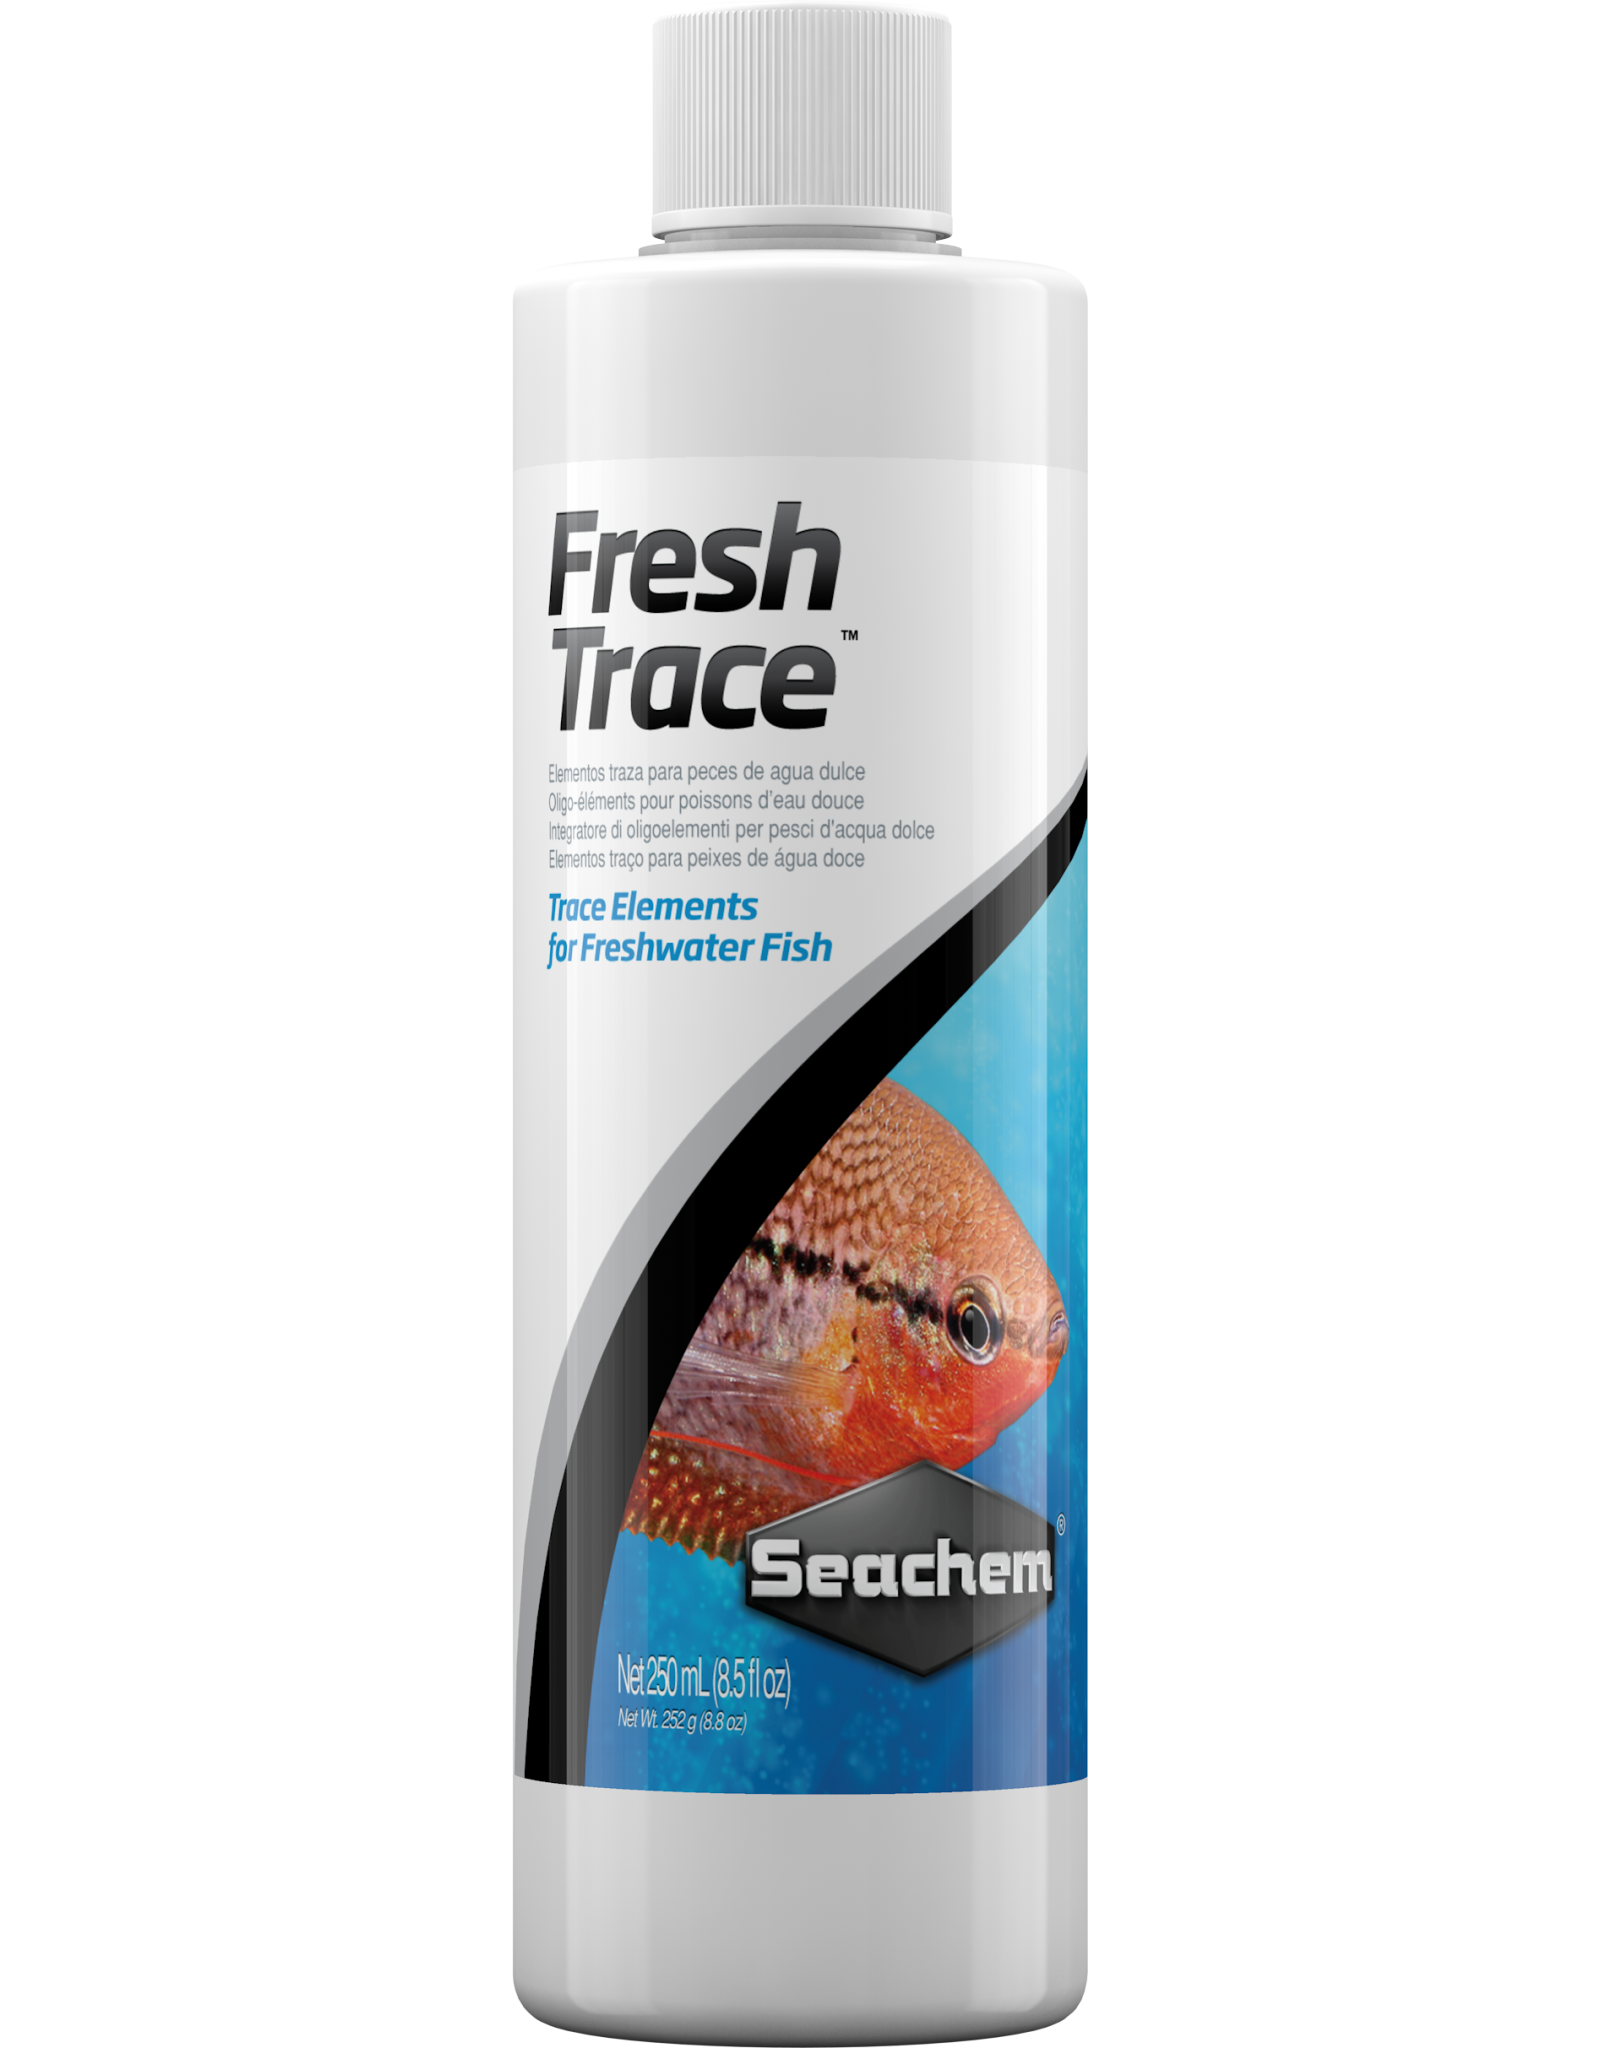 Seachem SEACHEM Fresh Trace 250mL